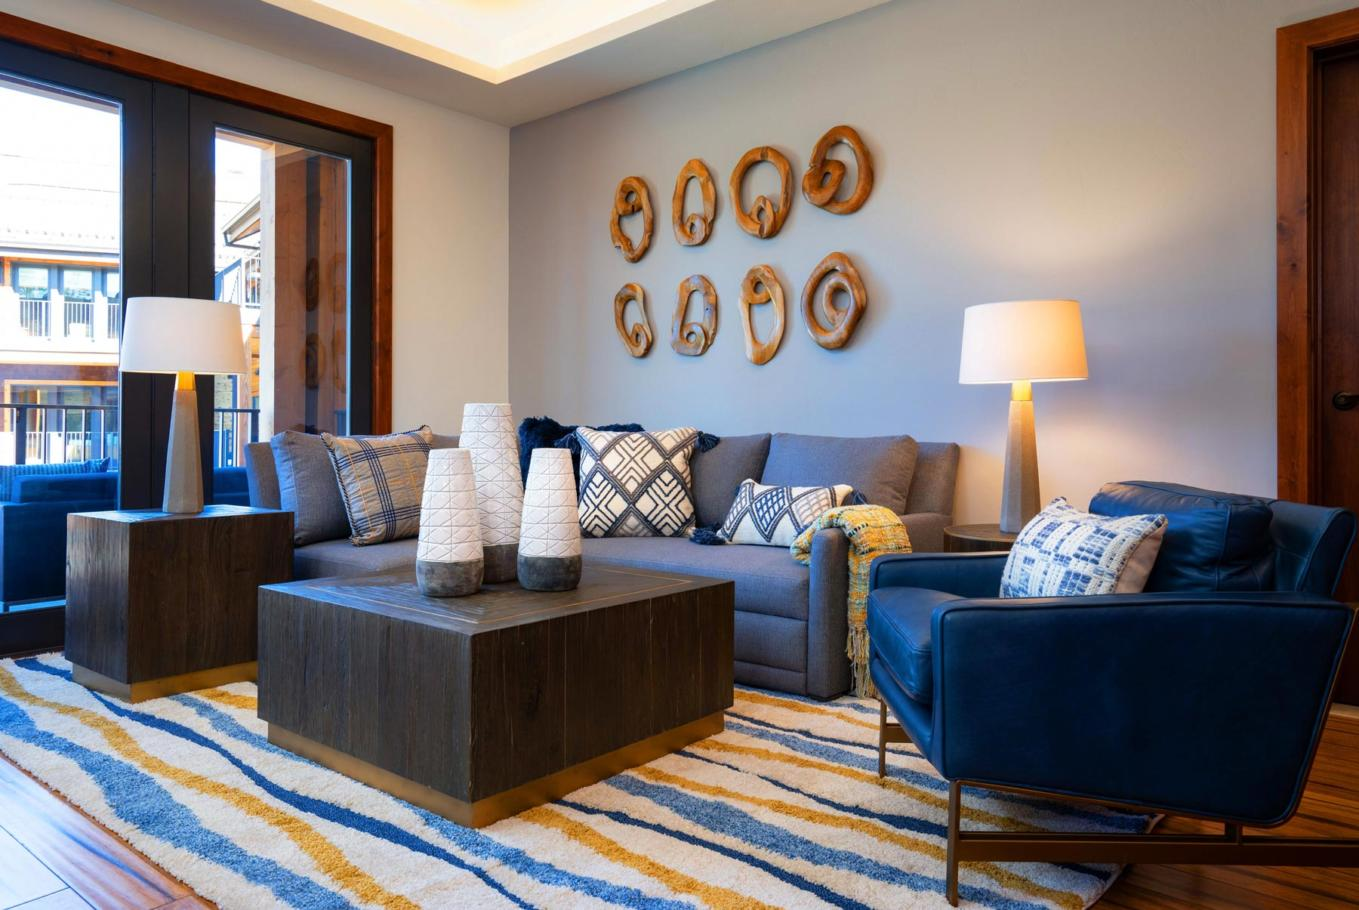 Zalanta Living Room Design by Talie Jane Interiors